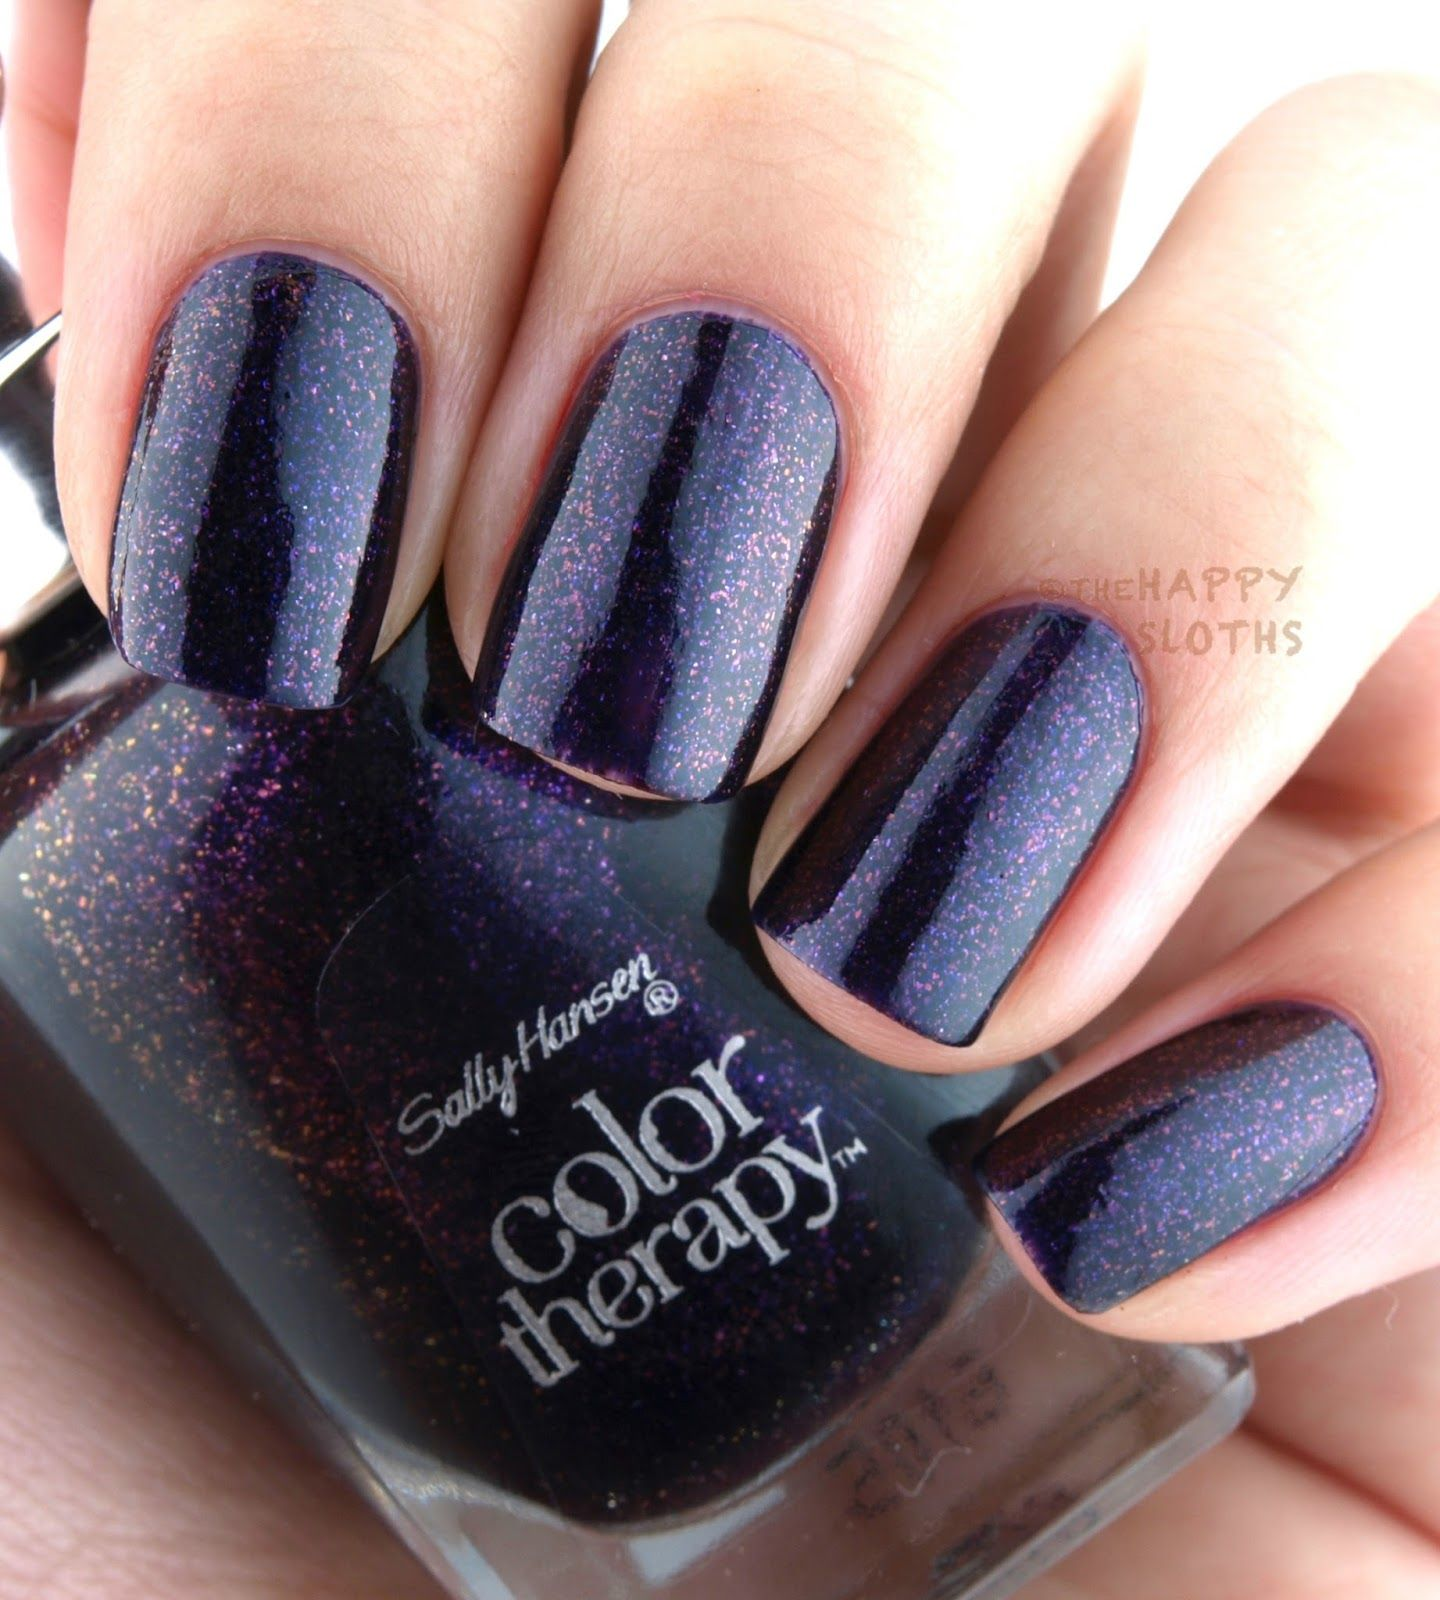 Sally Hansen Color Therapy Nail Polish: Review And